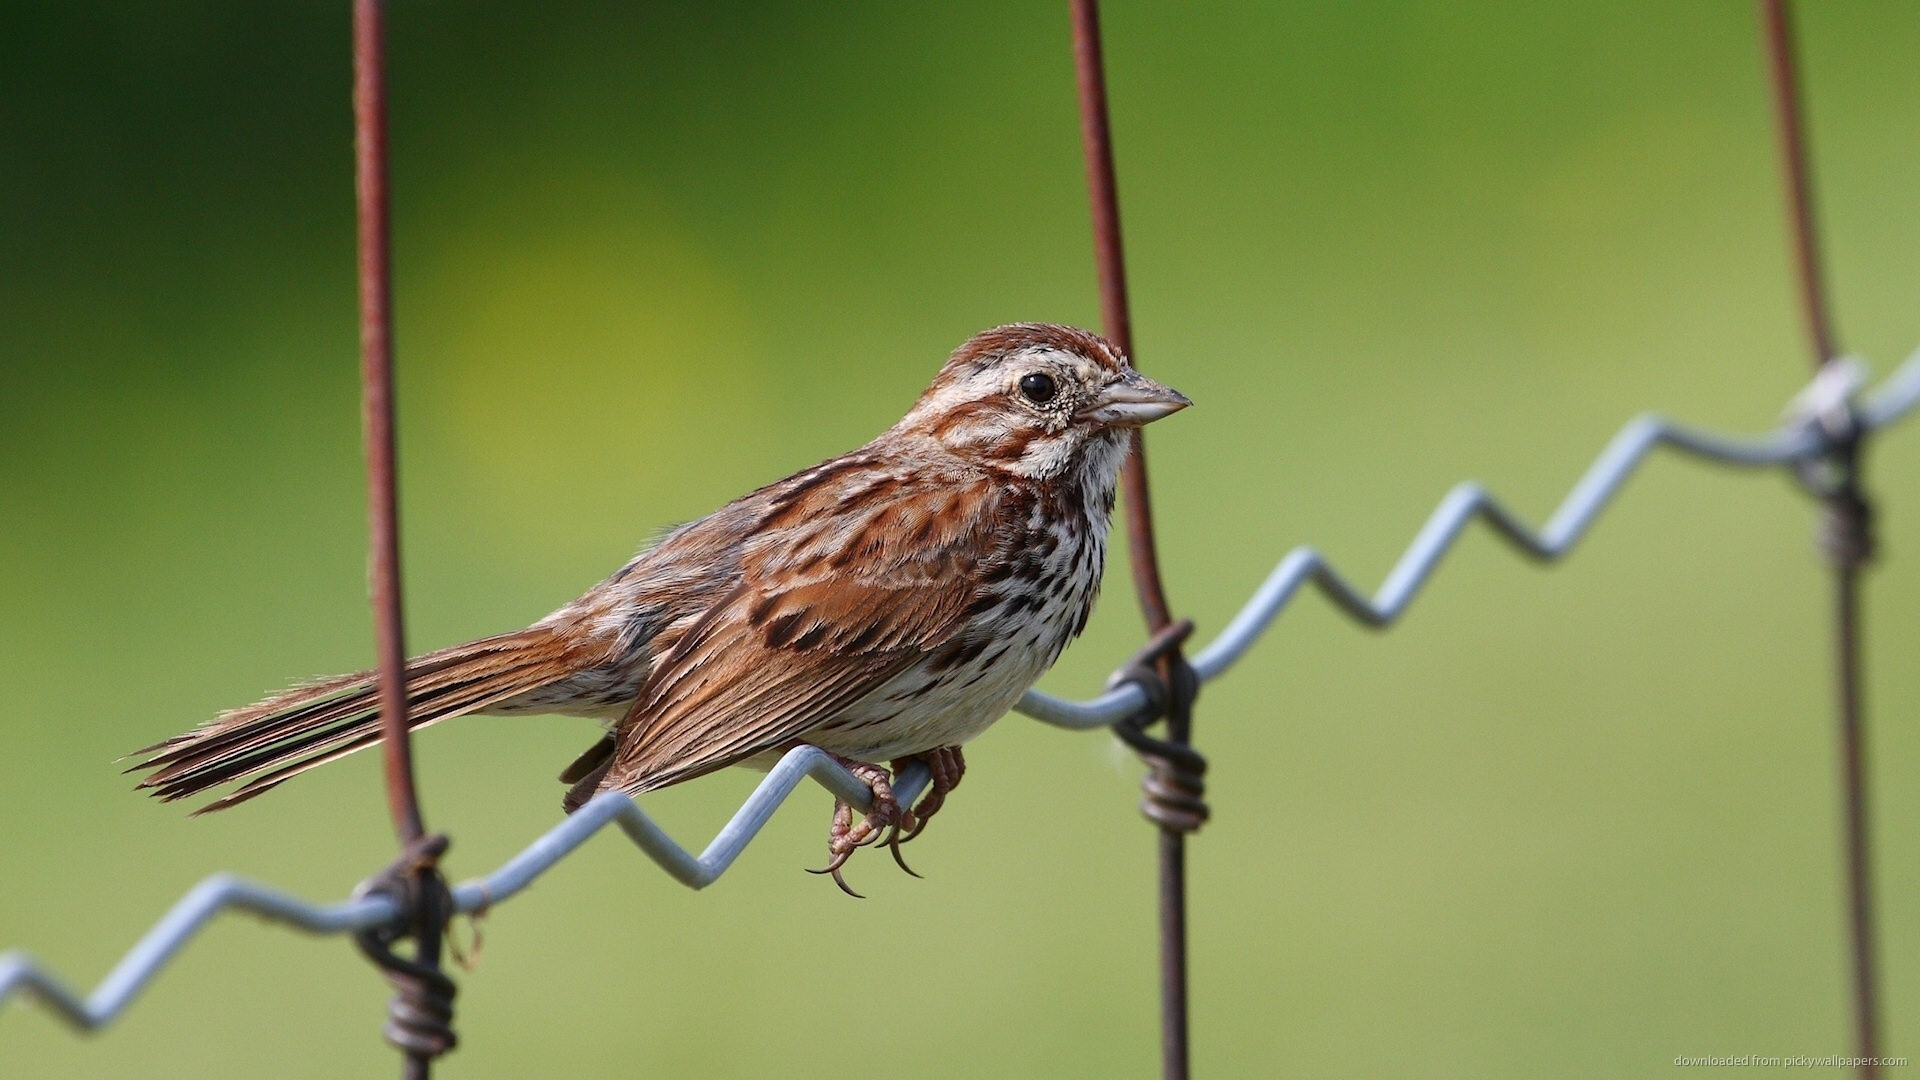 Beautiful Sparrow Bird Hd Images Hd Wallpapers